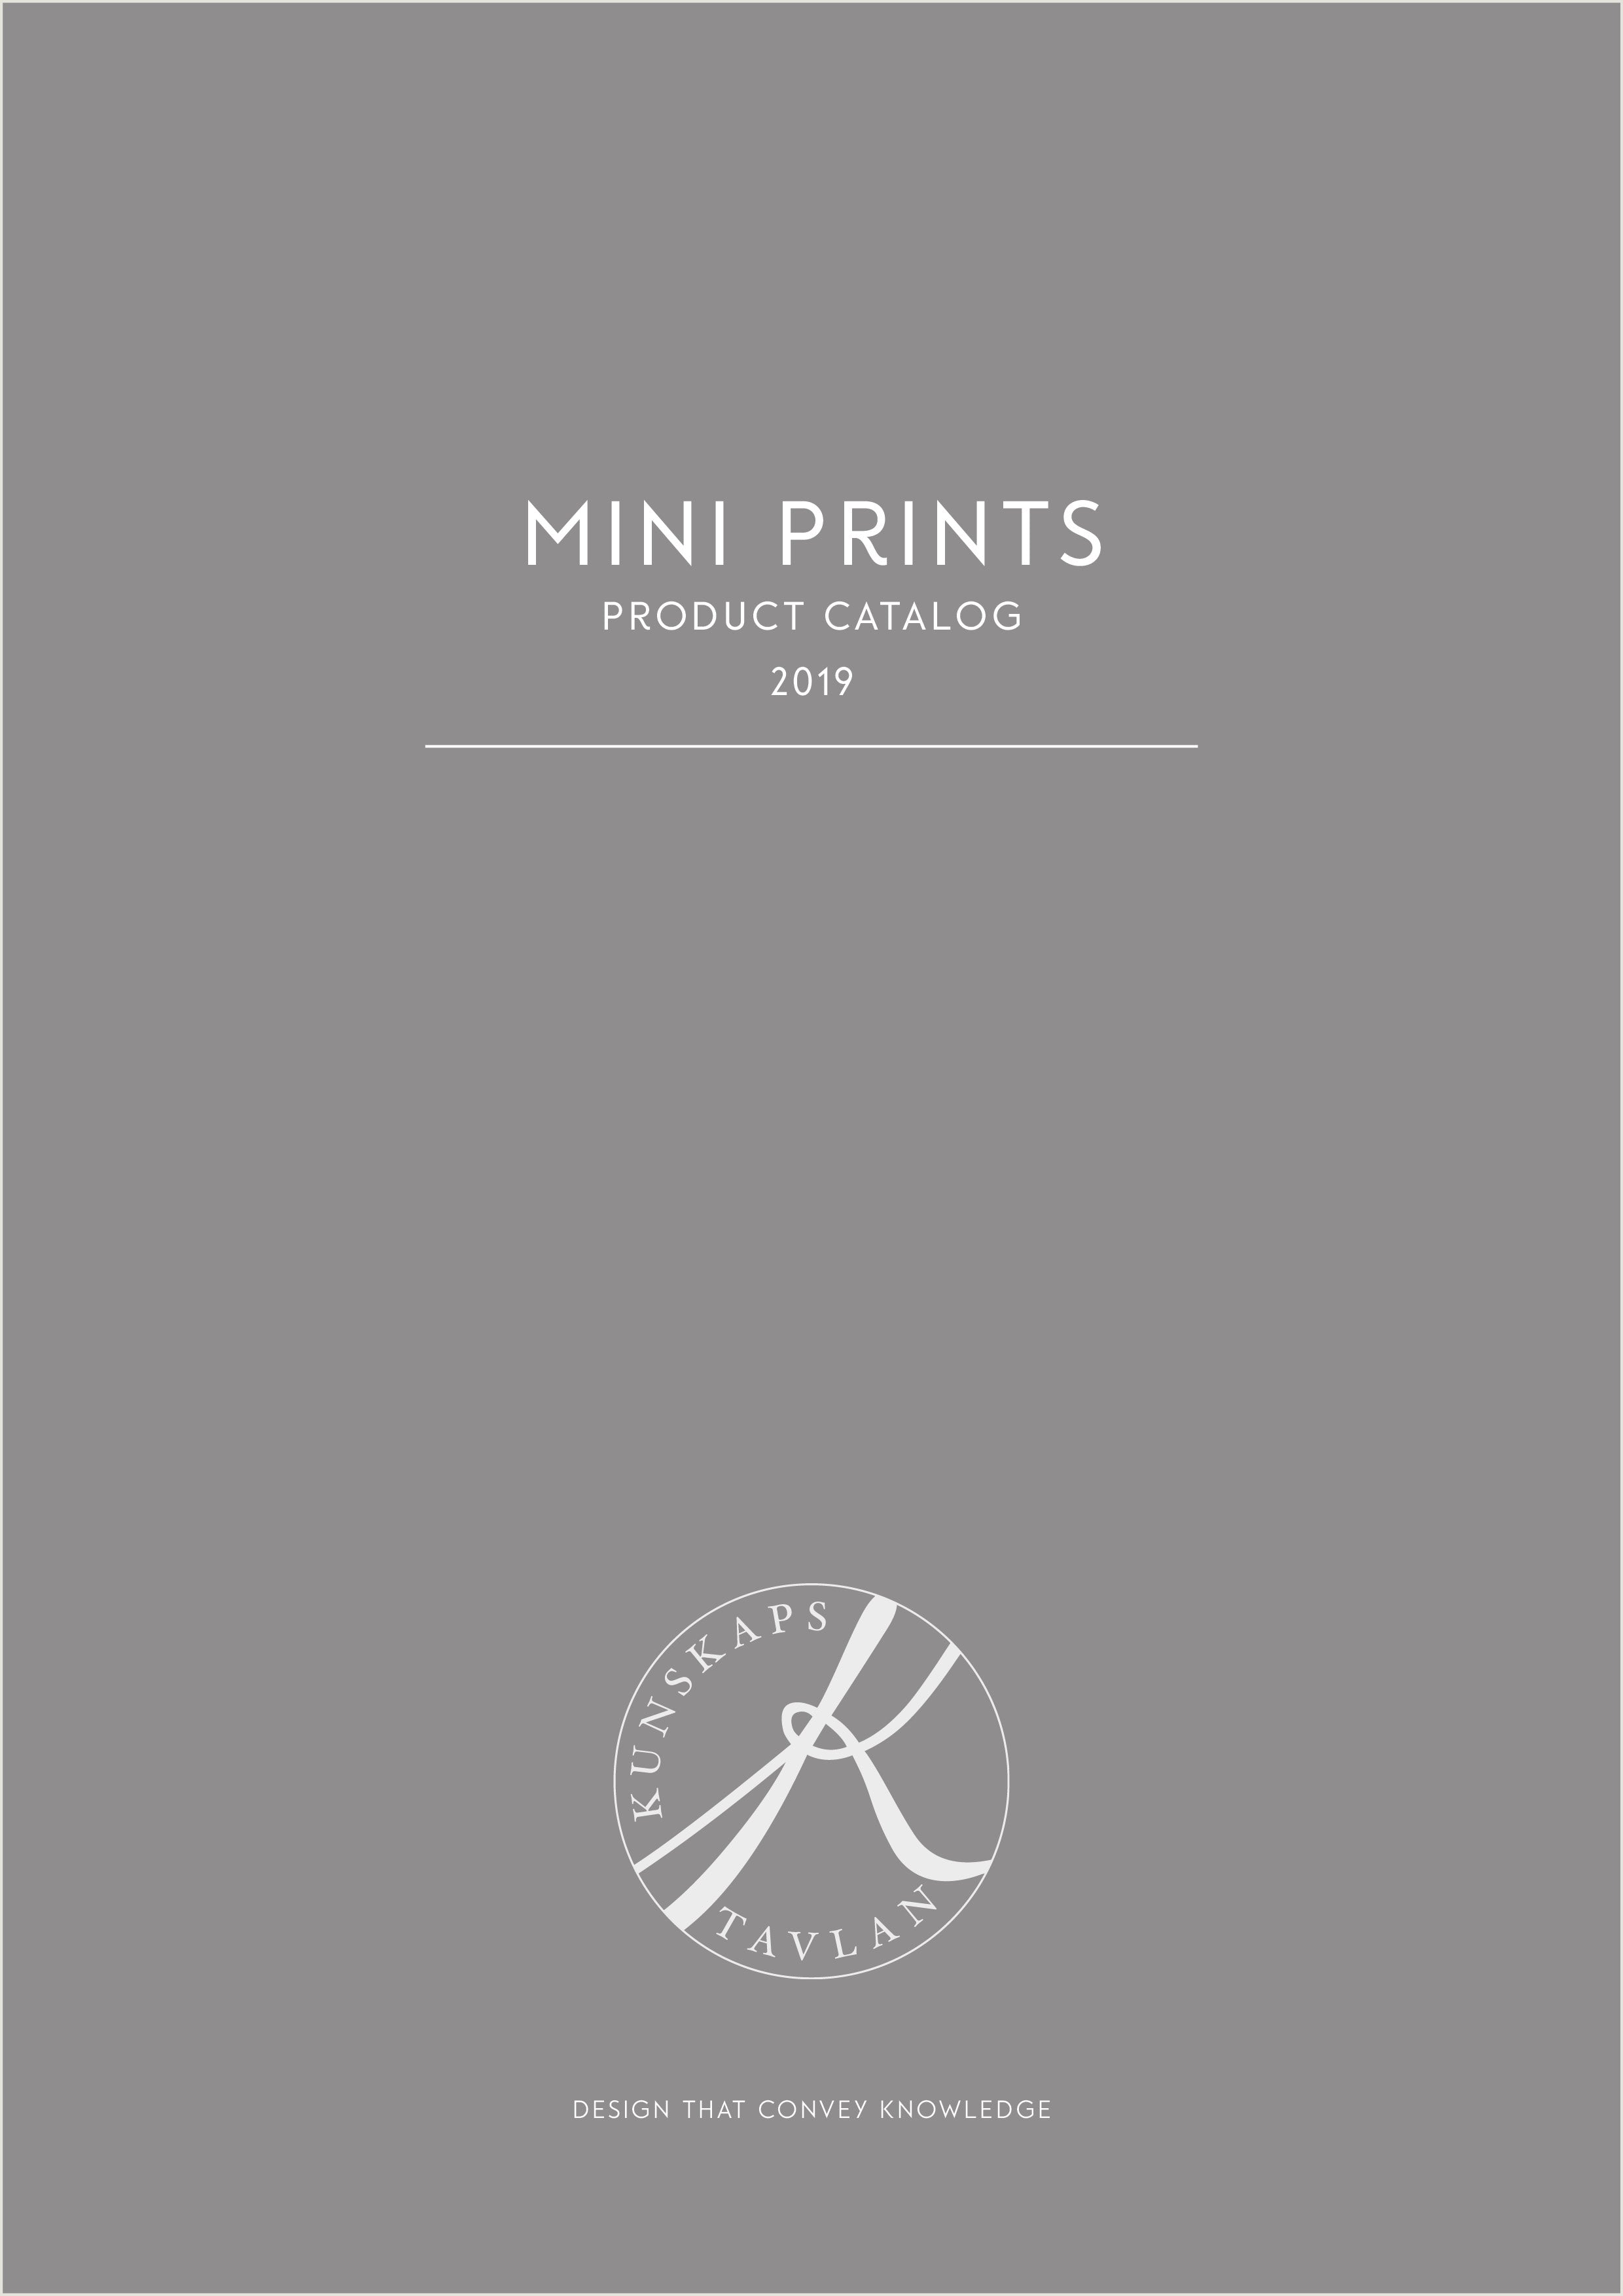 Kunskapstavlan mini prints product catalog